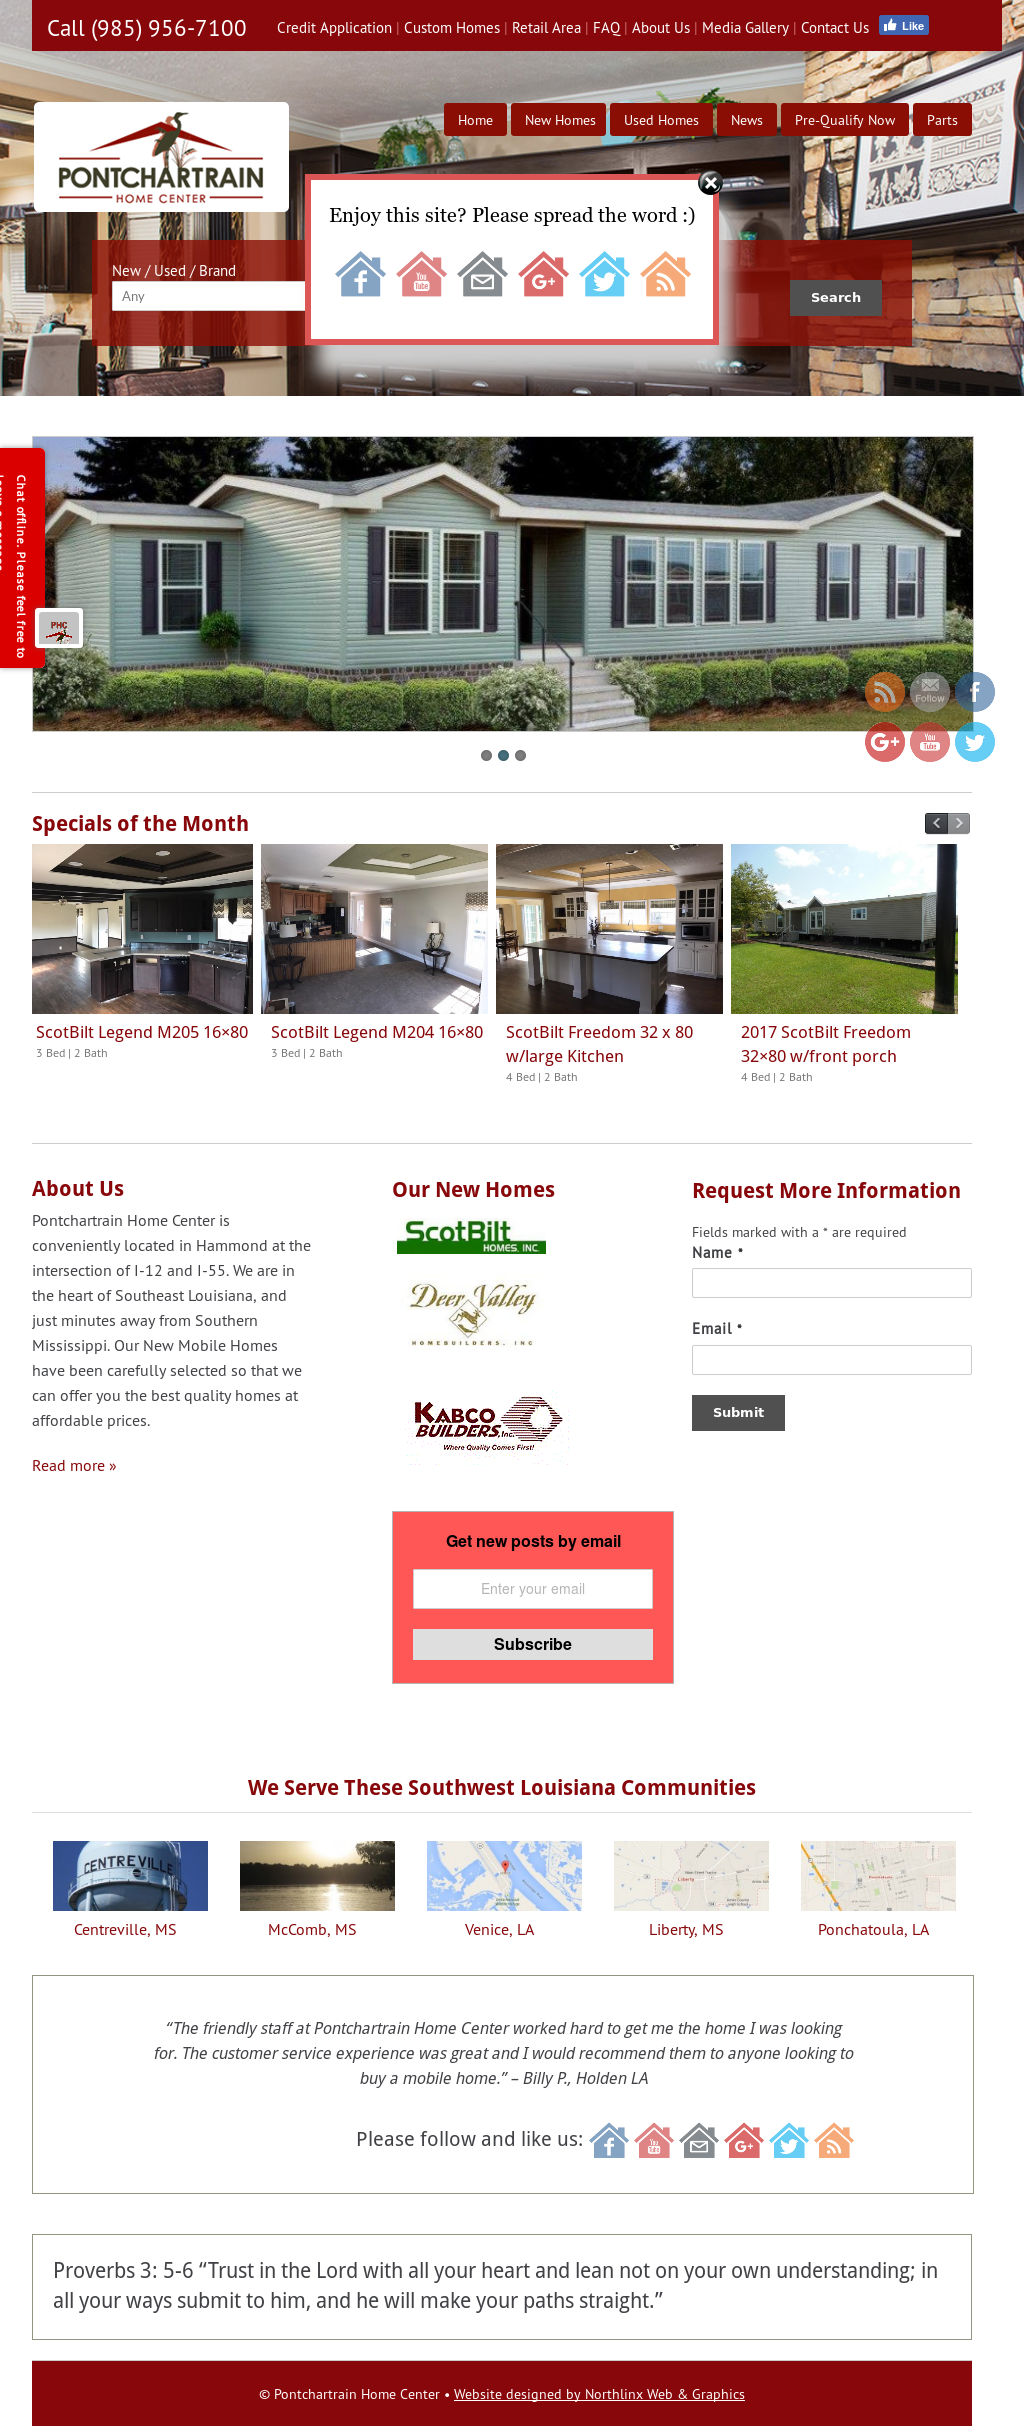 Pontchartrain Home Center- New & Used Mobile Home Sales Competitors